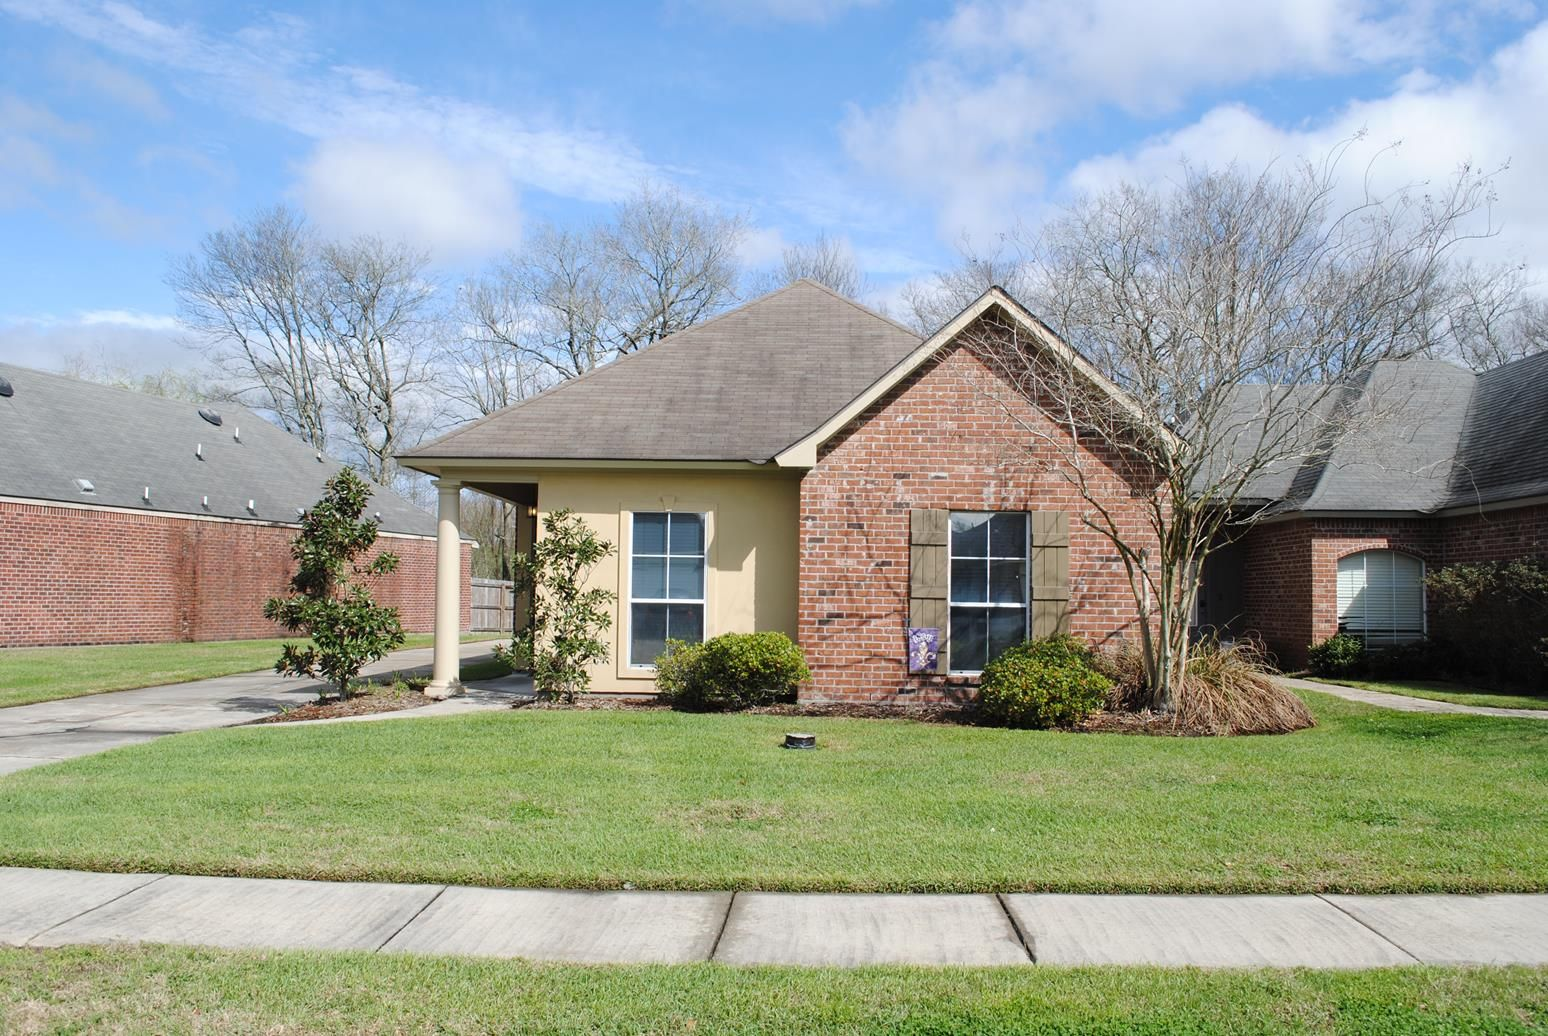 Great lake beau pre home near lsu and minutes to downtown baton great lake beau pre home near lsu and minutes to downtown baton rouge this 3 bedroom 2 bath home features ceramic tile floors in main living and wet areas dailygadgetfo Gallery